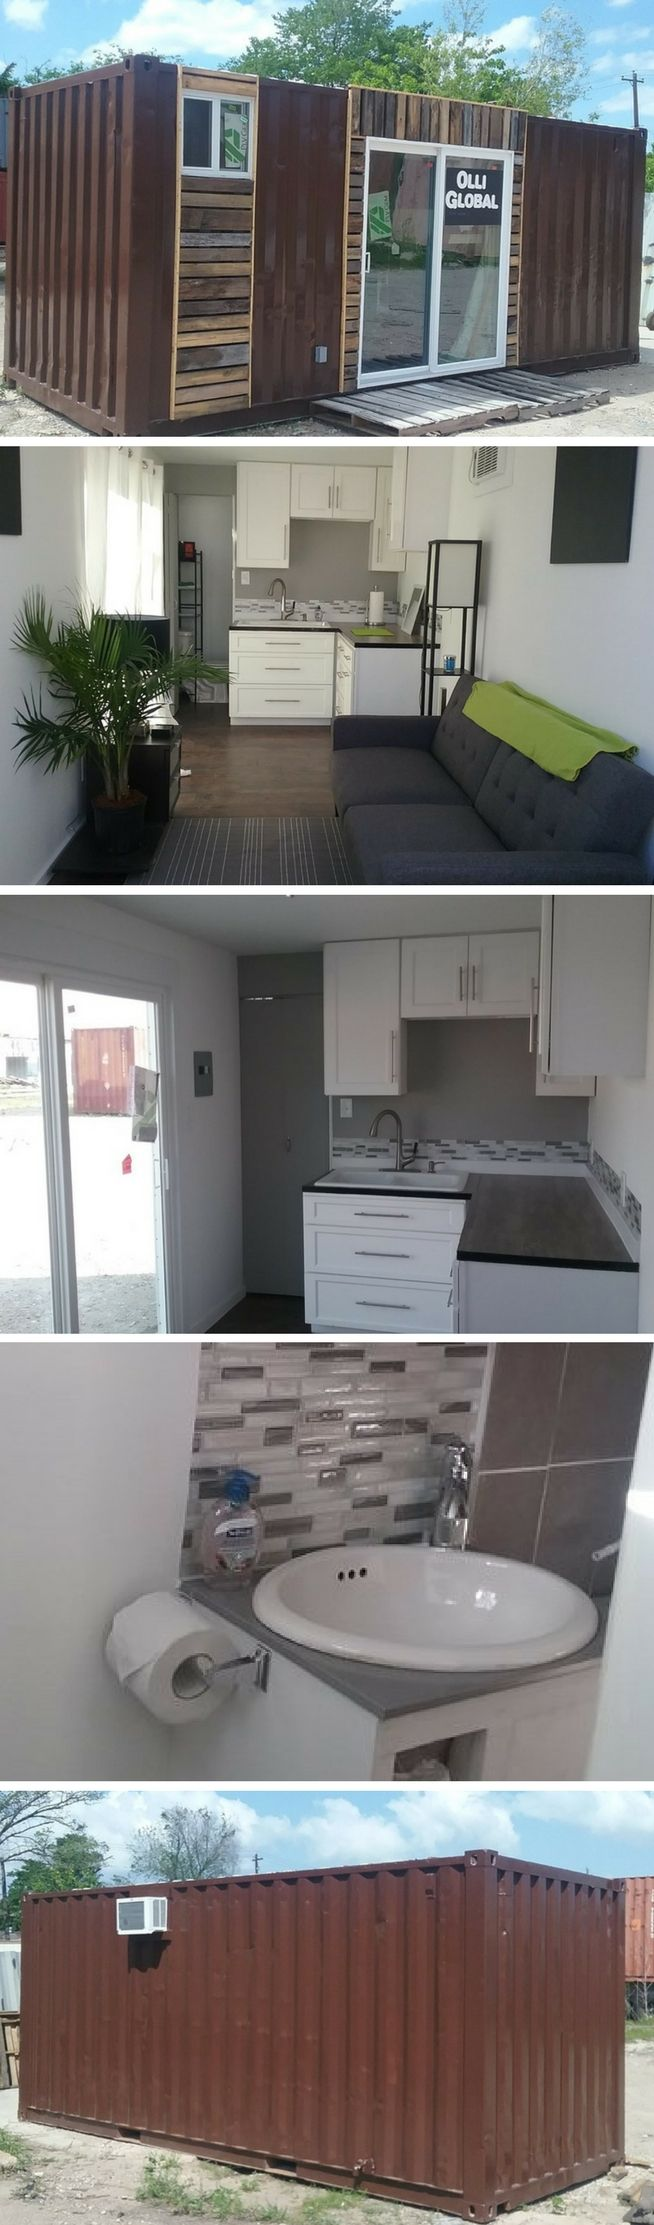 Container House - 20′ SHIPPING CONTAINER HOME - Who Else Wants Simple Step-By-Step Plans To Design And Build A Container Home From Scratch?